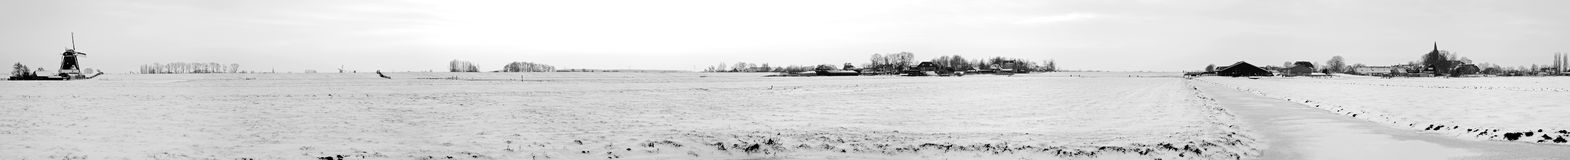 Panorama from snowy countryside in Netherlands Stock Photo